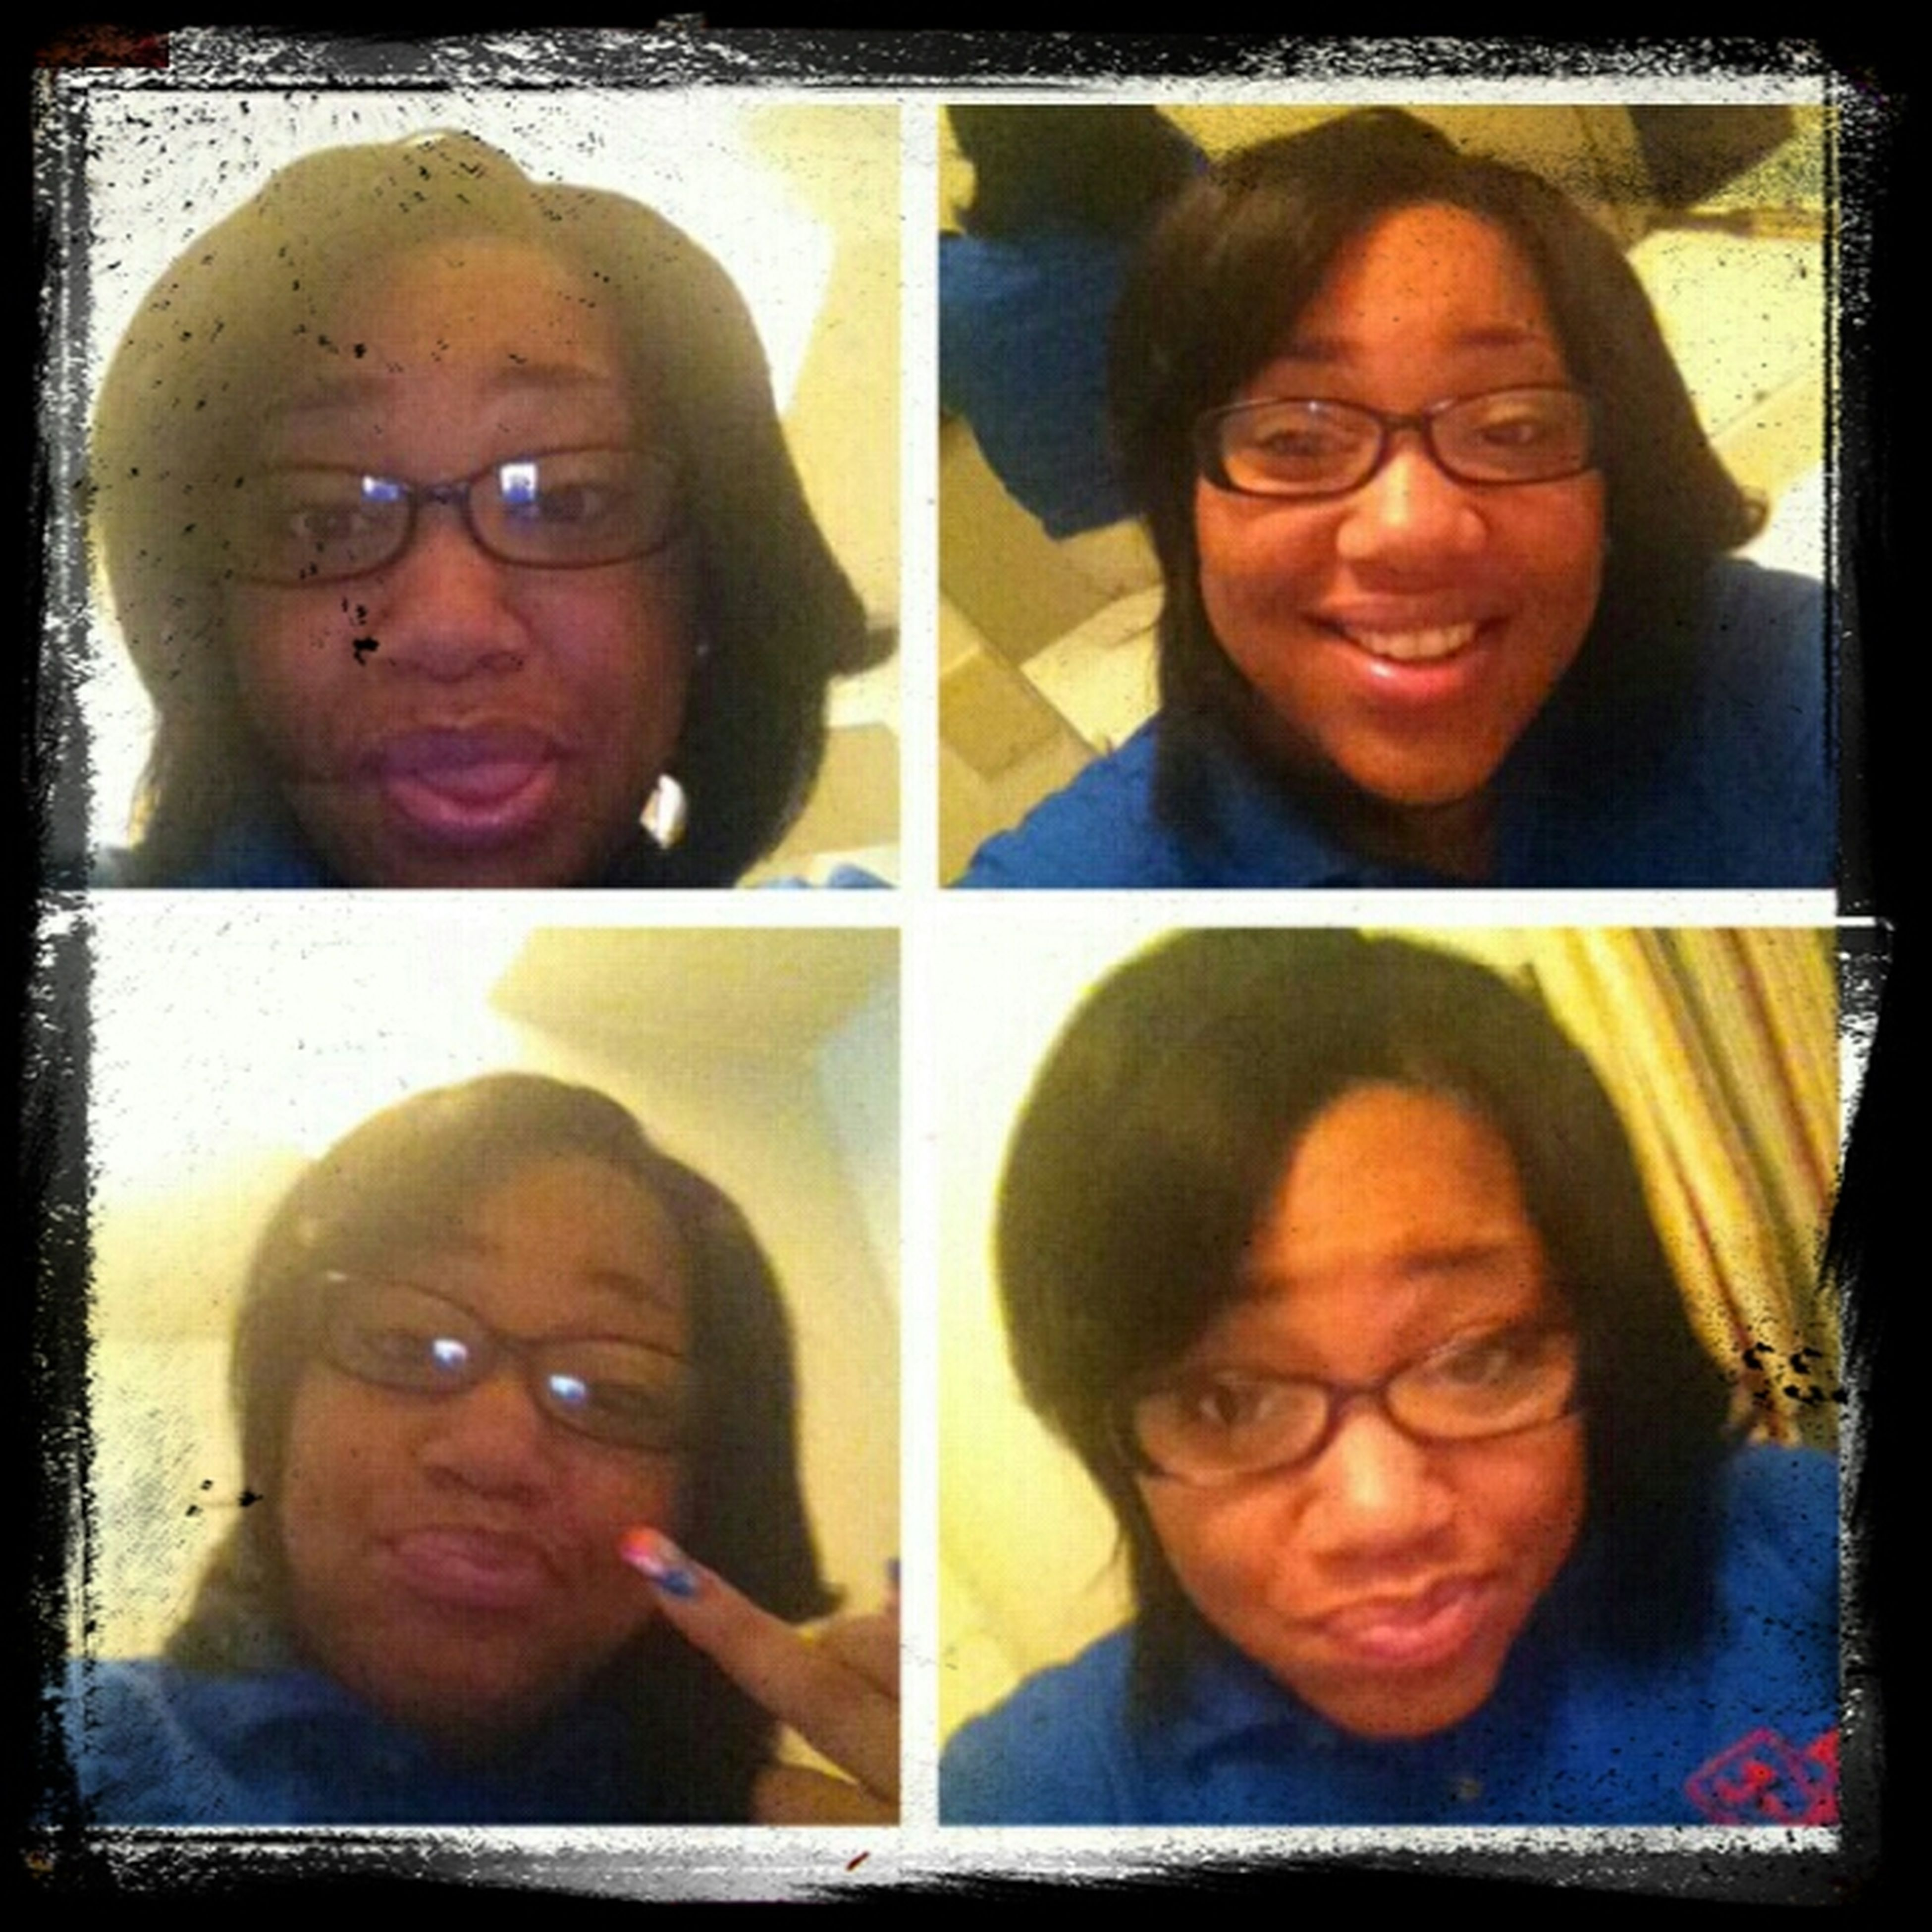 Many faces of me